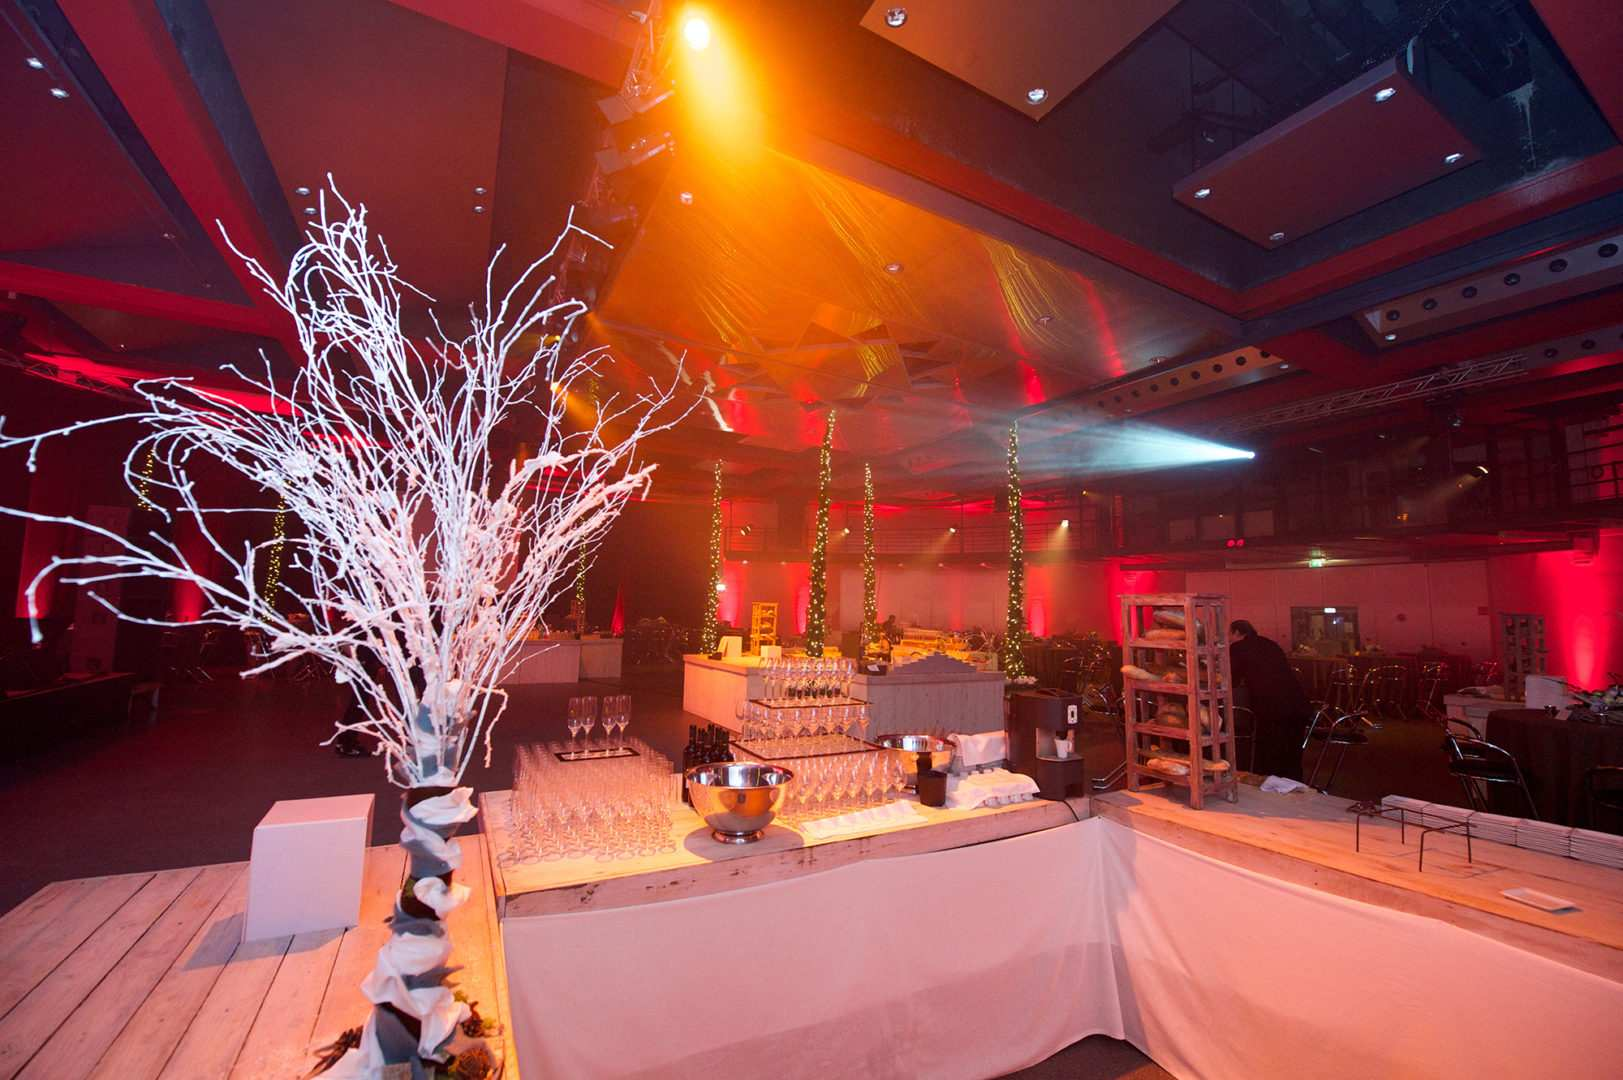 xmax-party-ferrero-2014-015-luxembourg-event